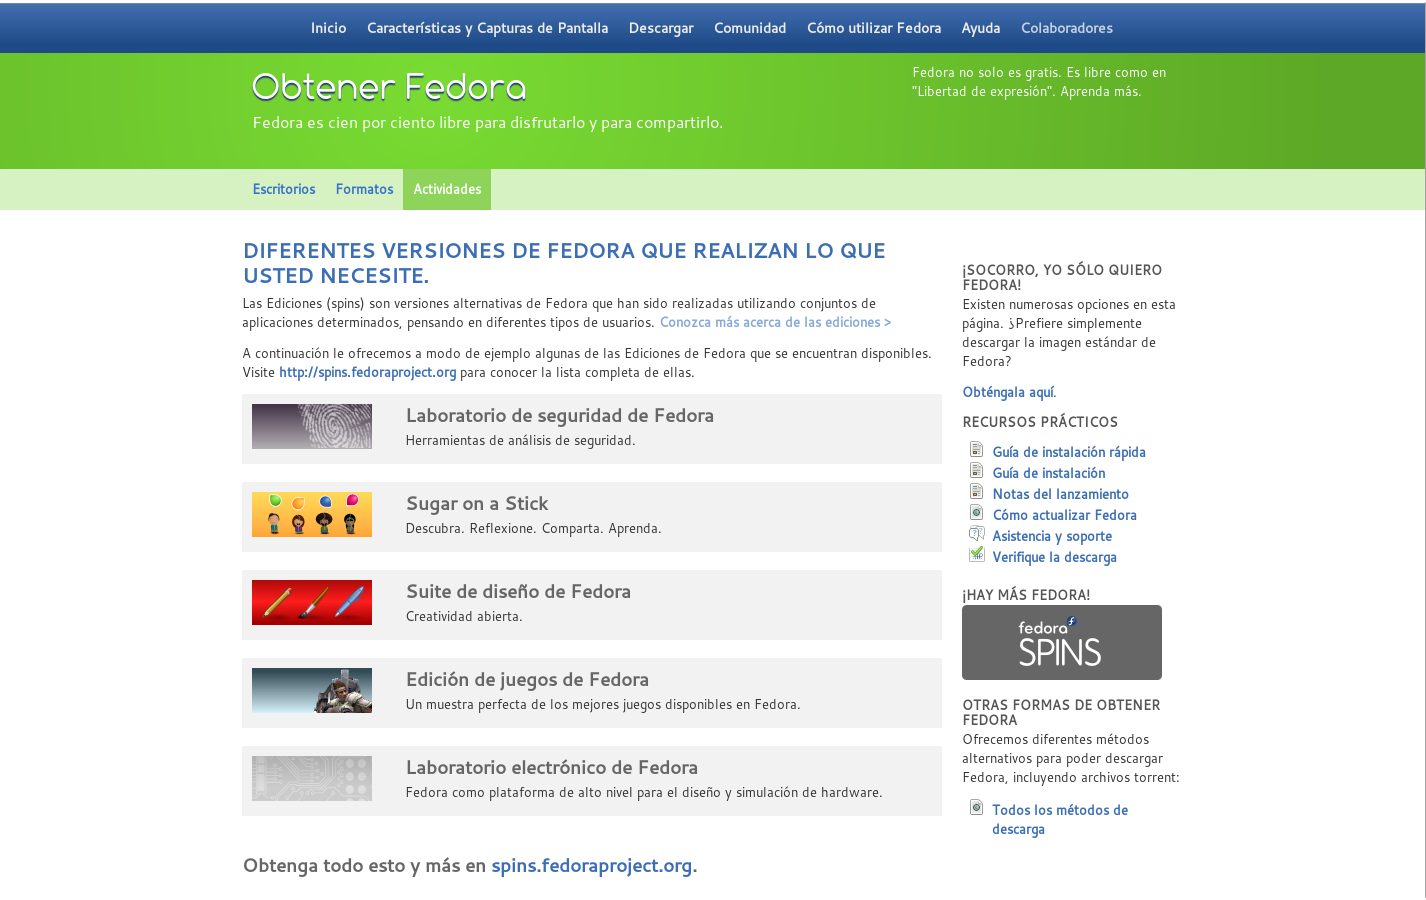 project fedora Fedora is always free for anyone to use, modify, and distribute it is built and used by people across the globe who work together as a community: the fedora project want more fedora options the fedora community also releases arm images, alternate live spins, and other variations of fedora tailored to specific requirements.